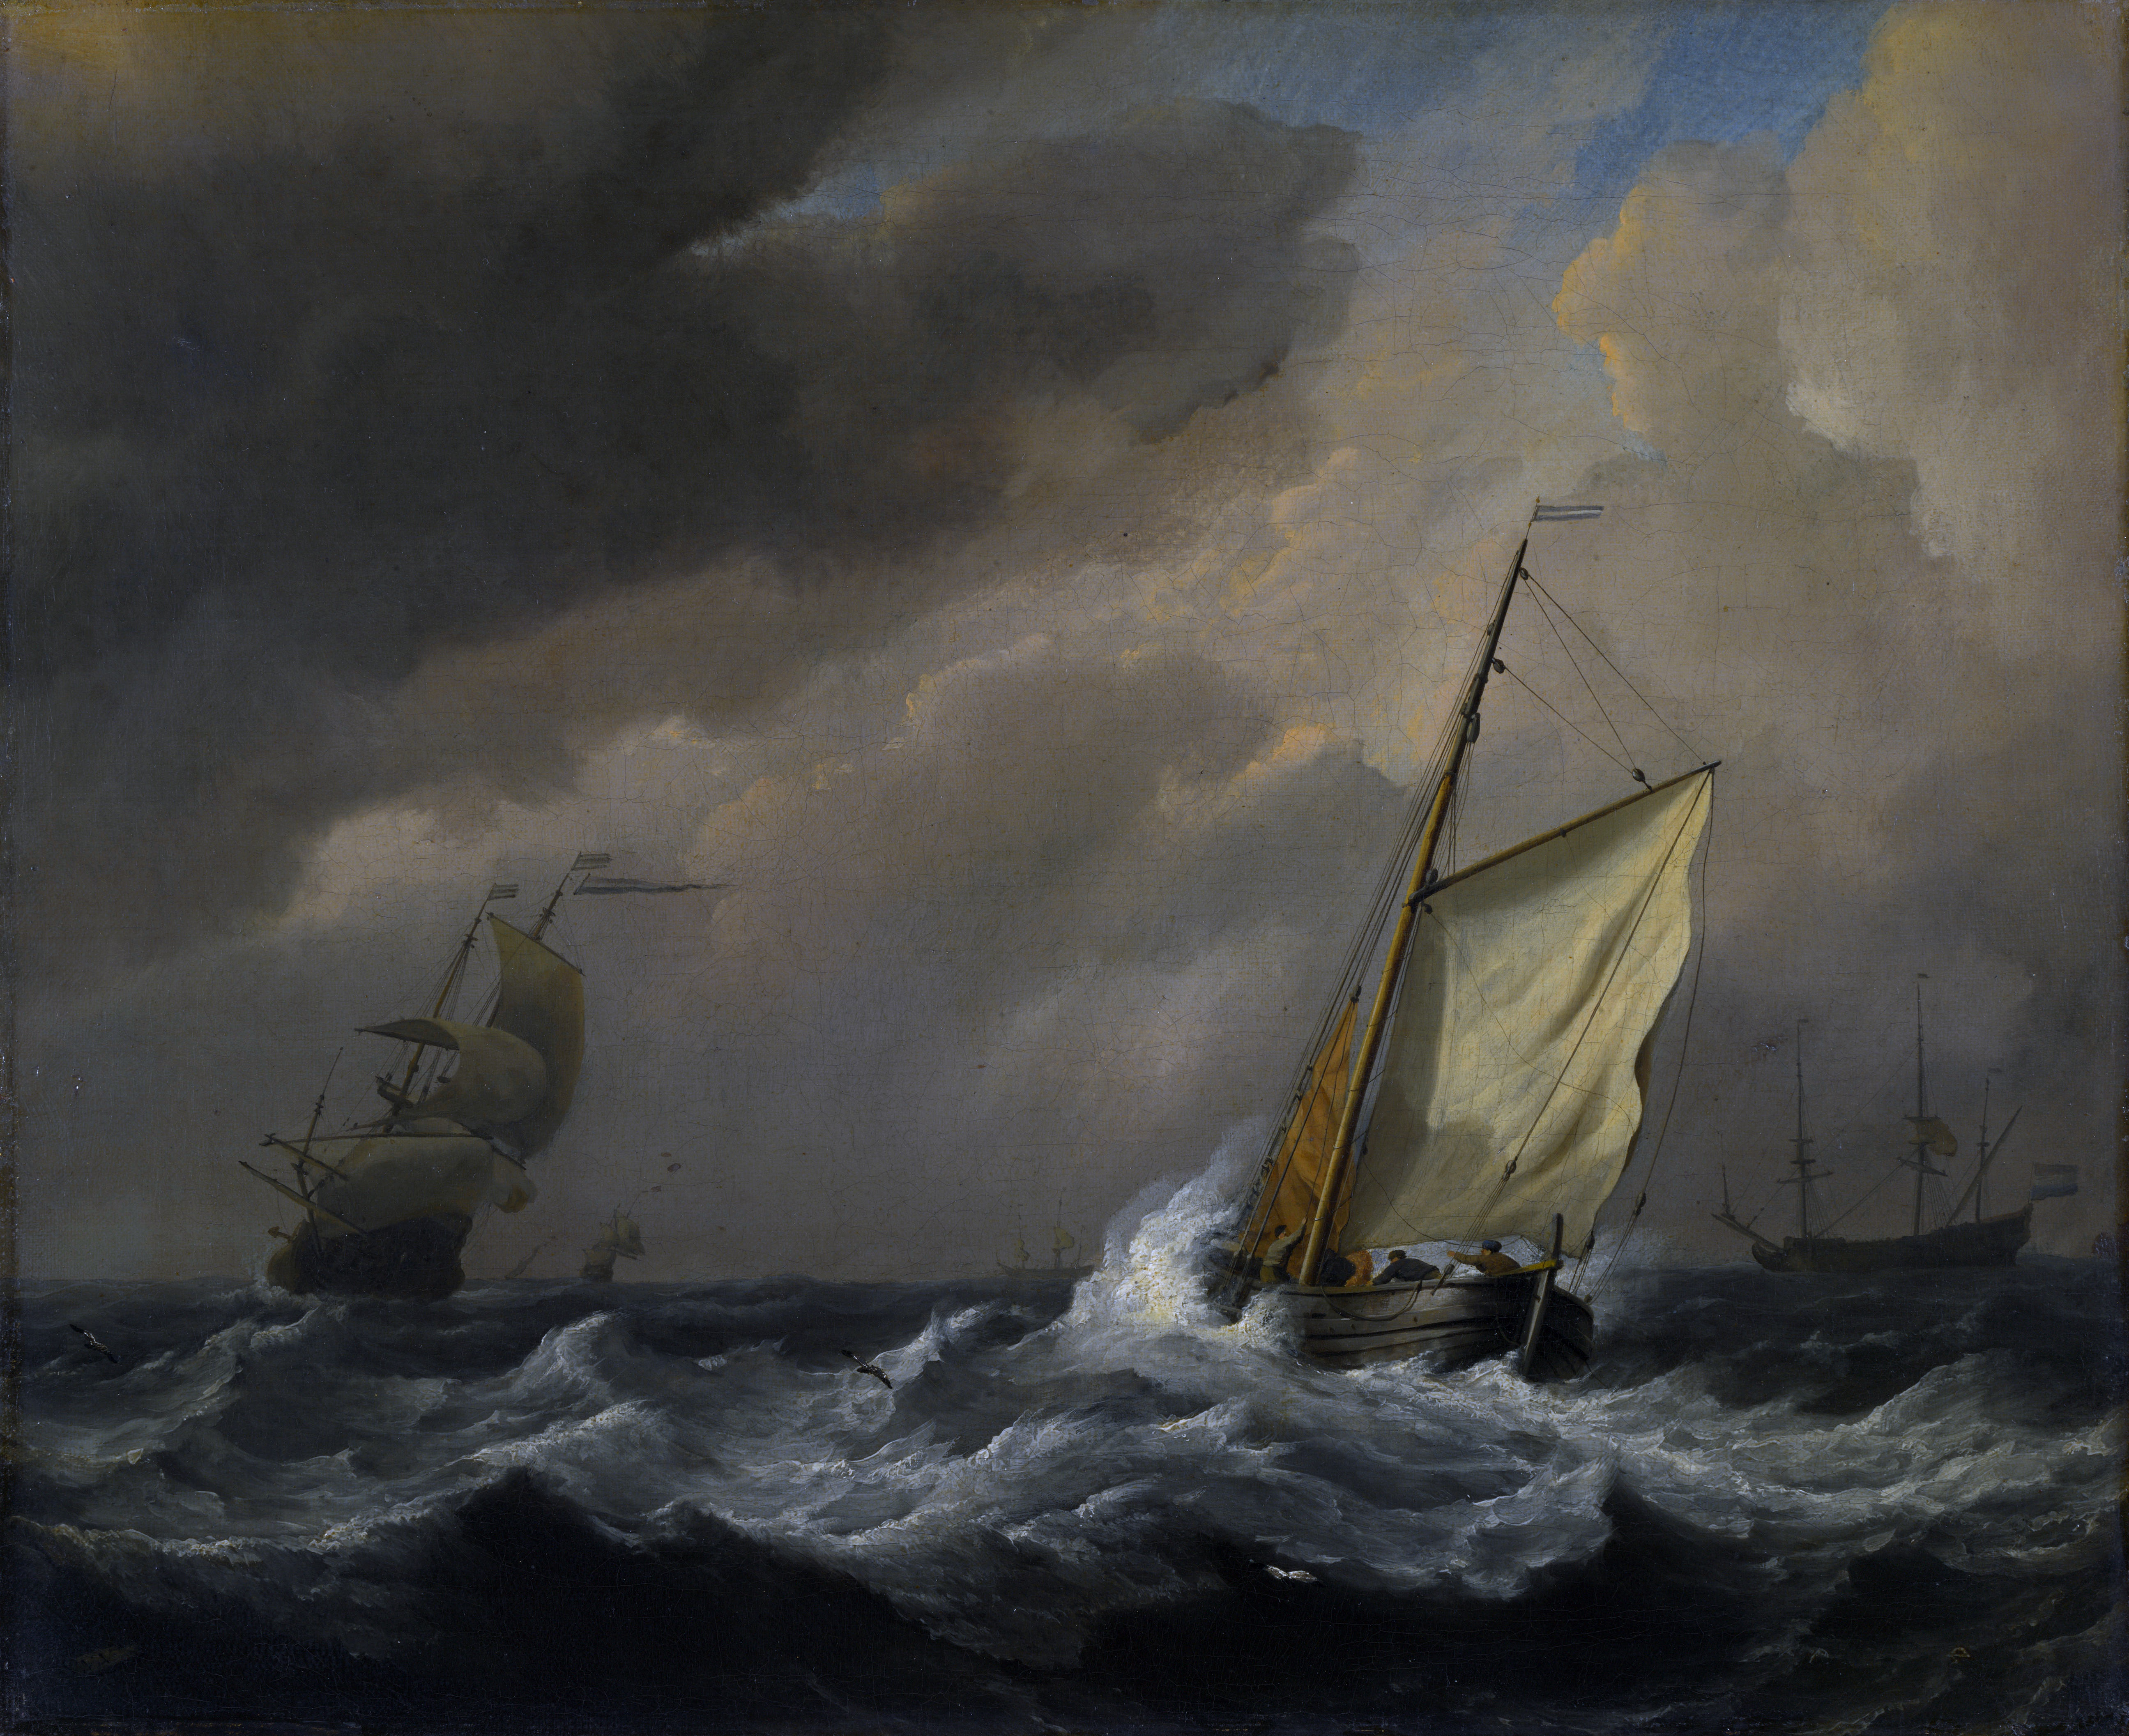 A Small Dutch Vessel Close-Hauled in a Strong Breeze, by Willem van de Velde, the Younger, circa 1672, 5183px